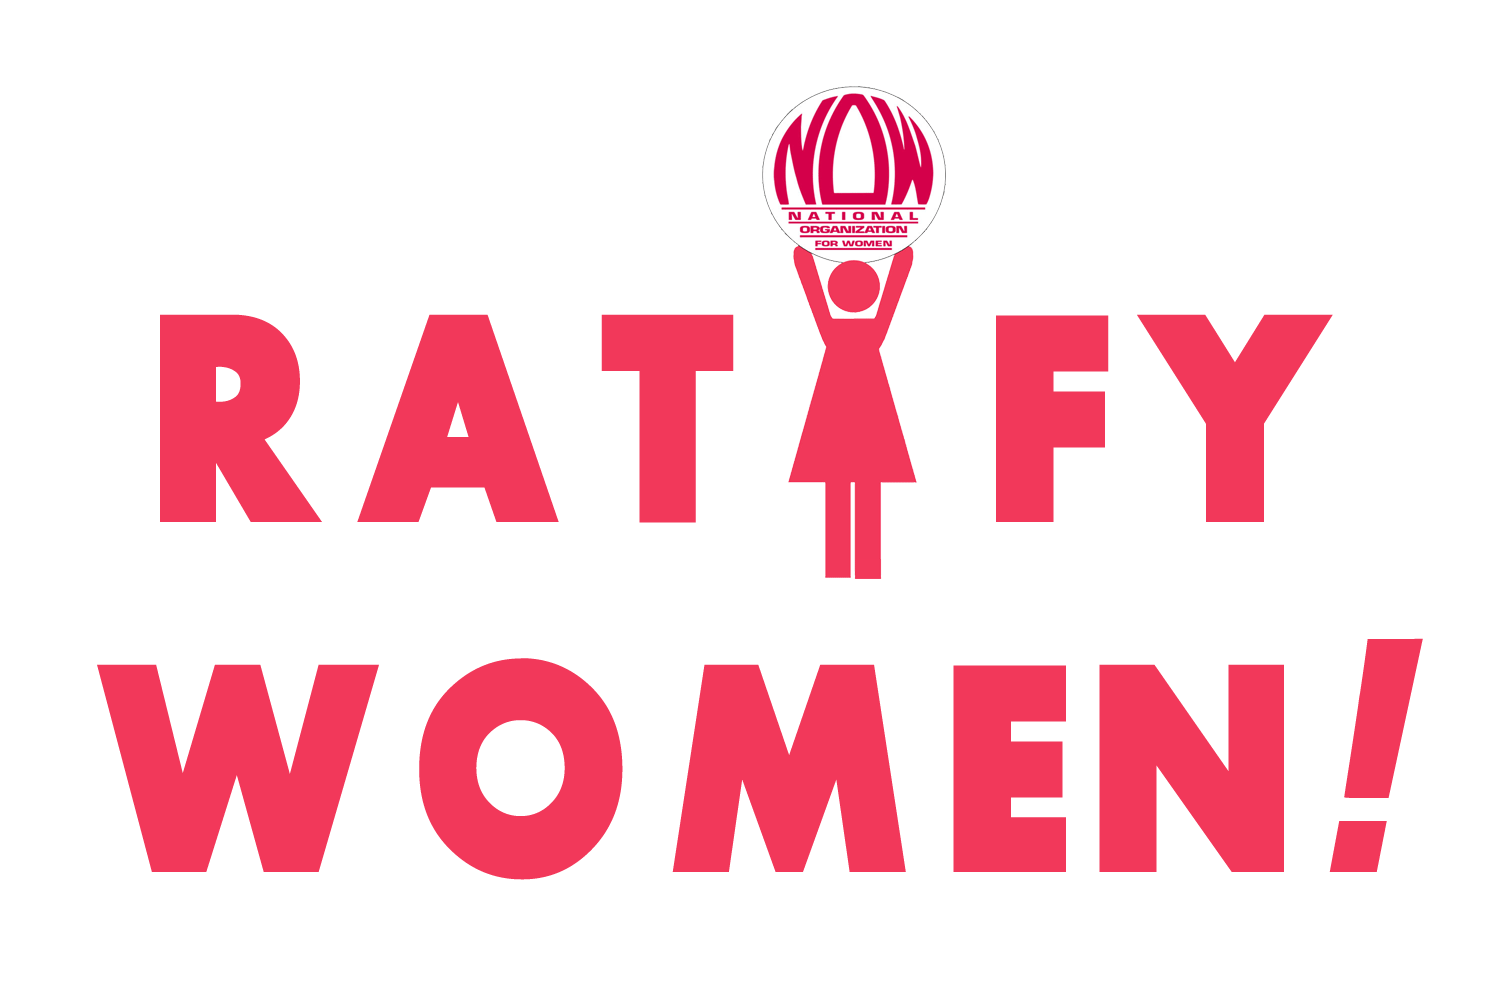 Ratify Women Logo